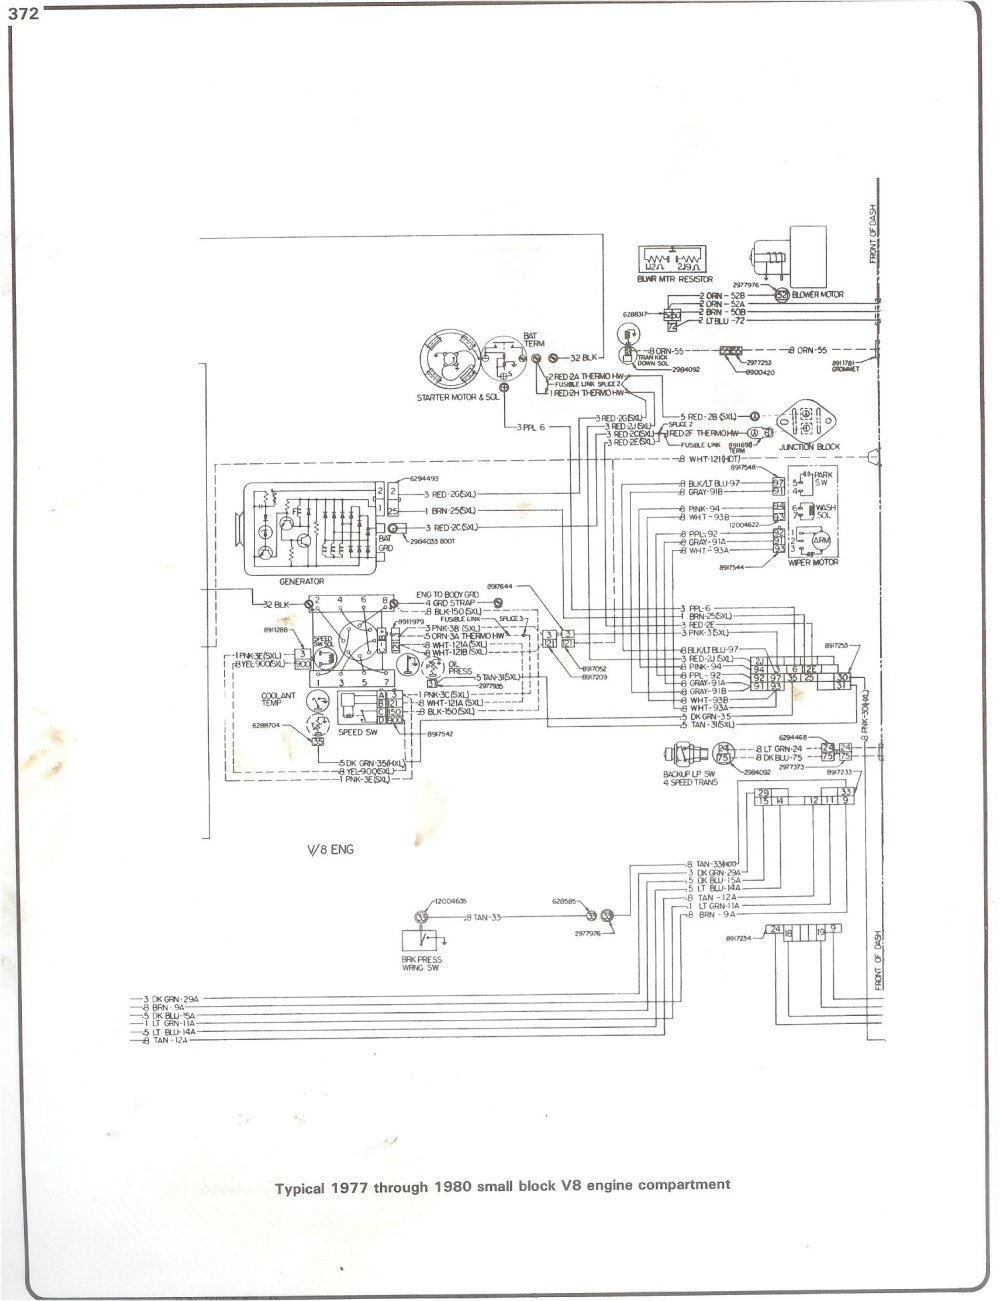 medium resolution of under hood wiring schematic for 1978 cheny blazer chevy international tractor wiring diagram international f1954 wiring diagrams